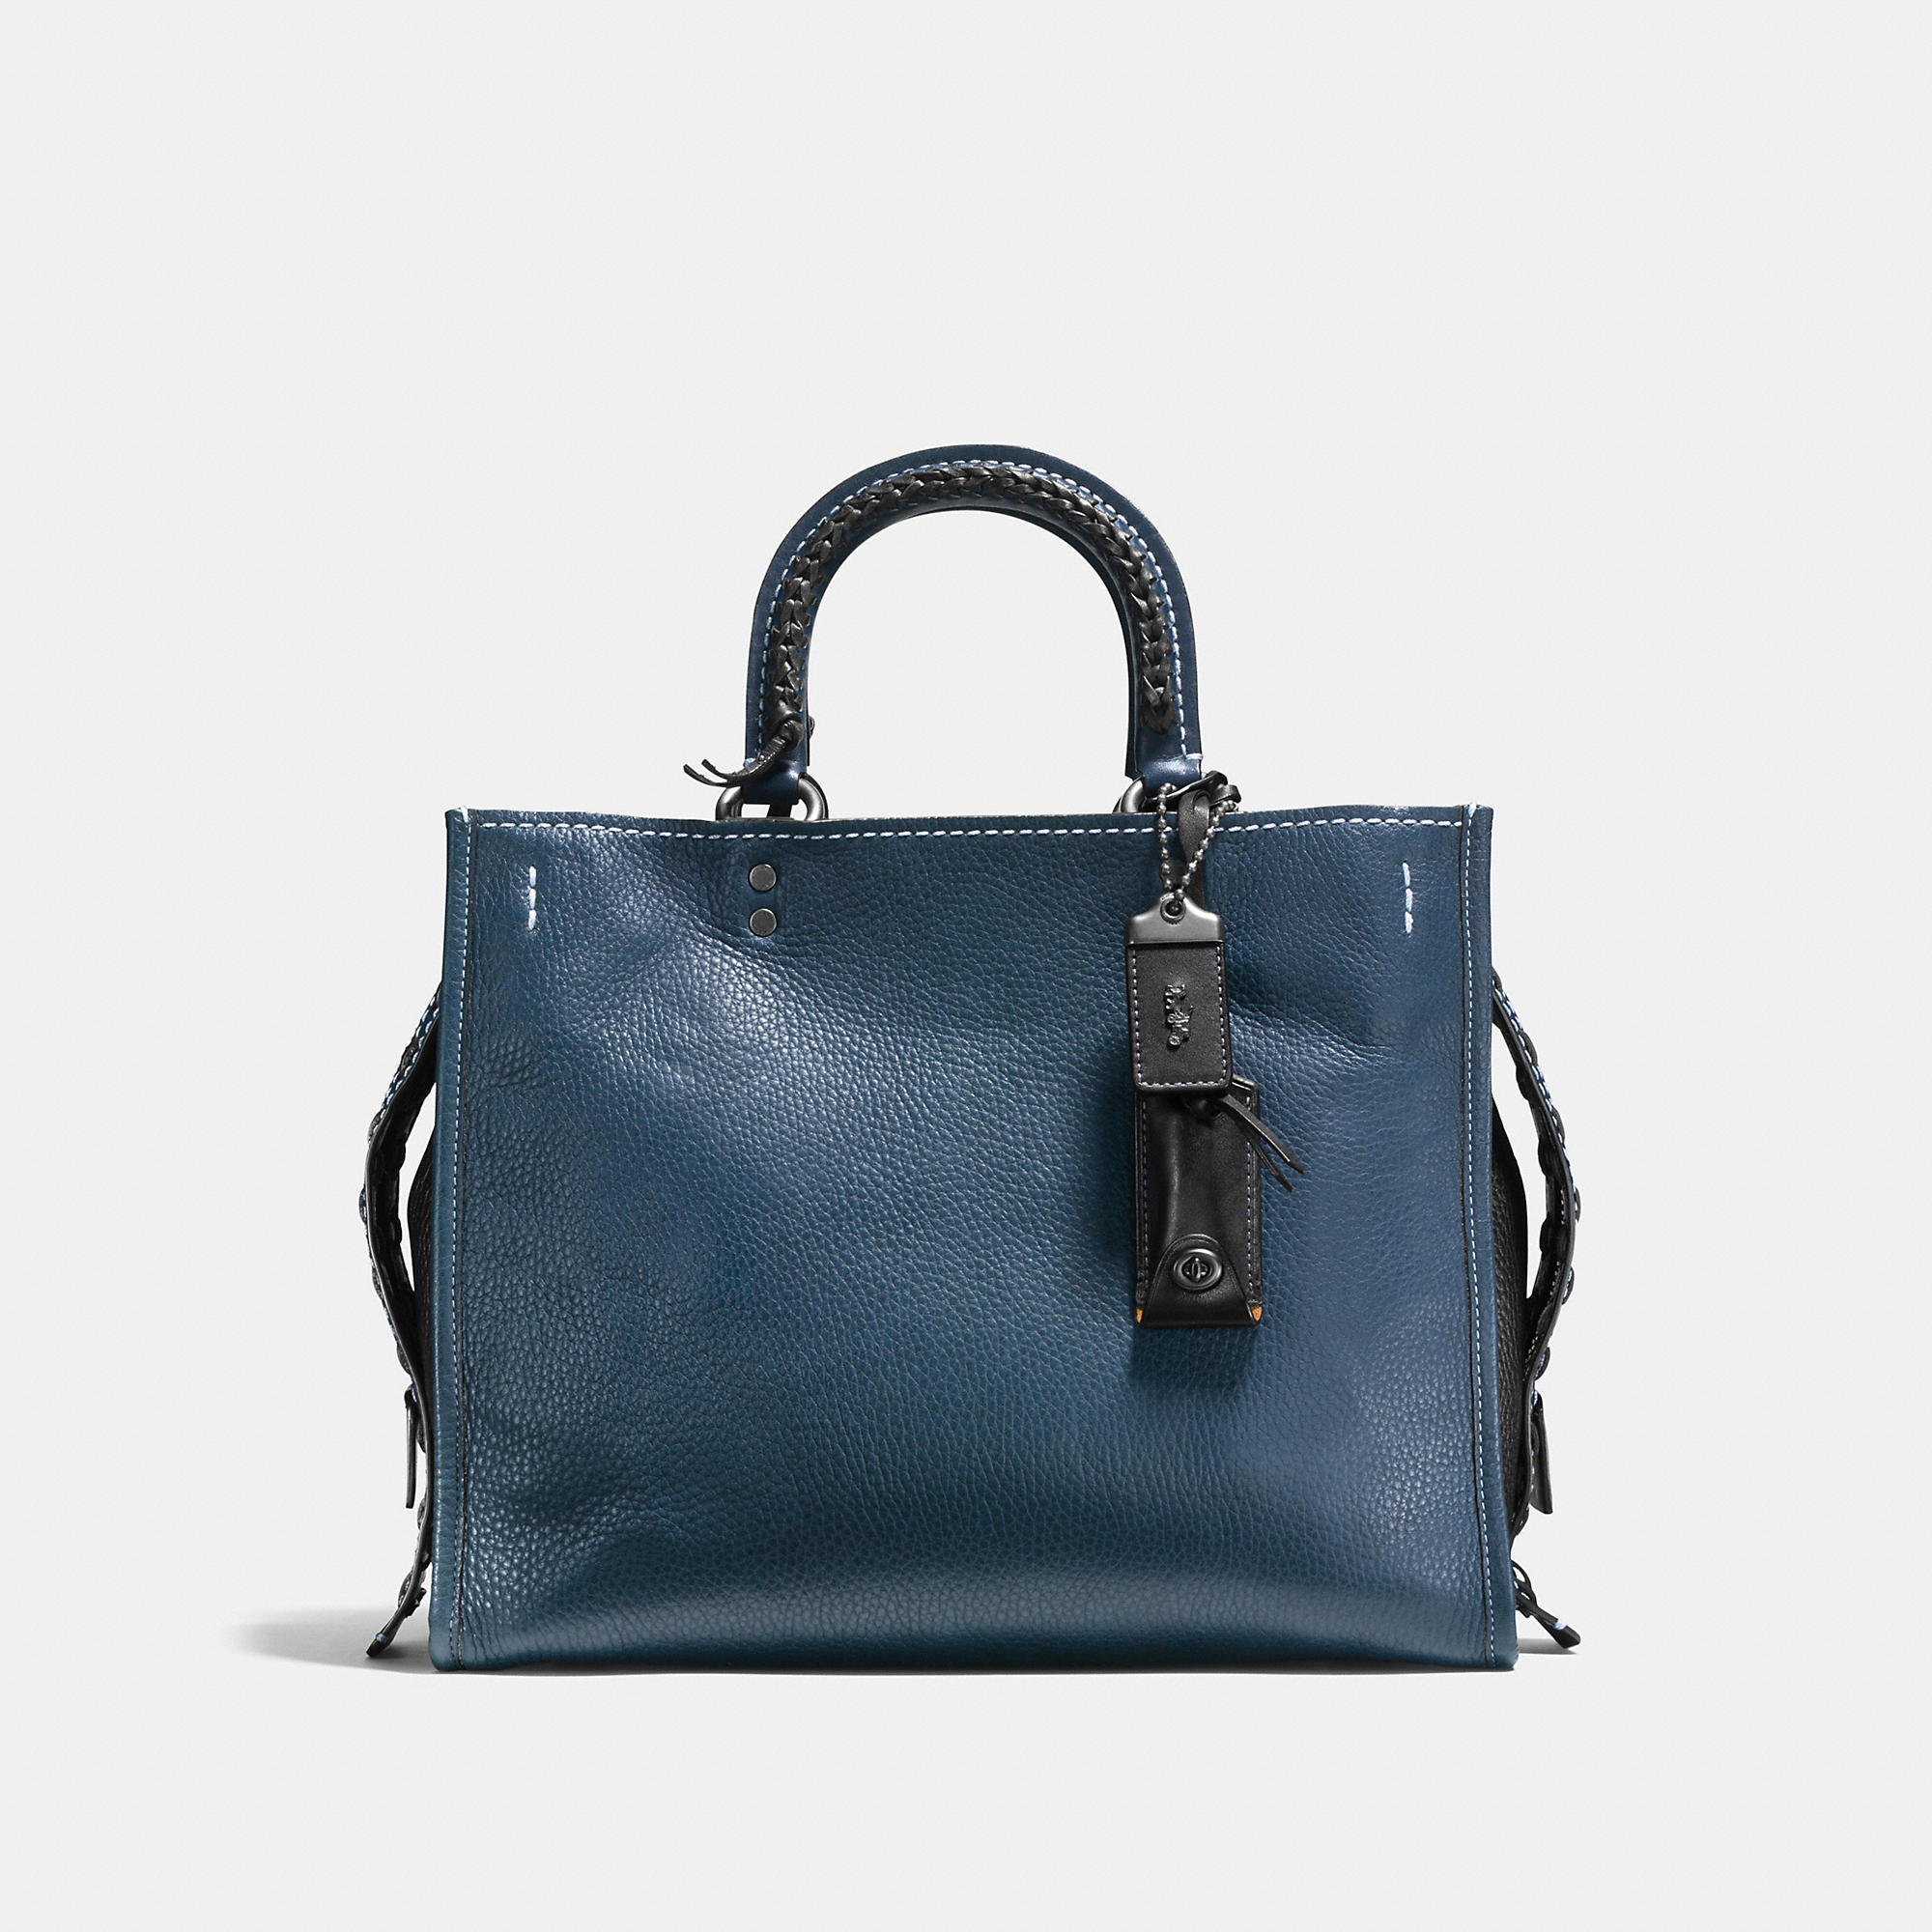 Coach Rogue In Glovetanned Leather With Western Whiplash Detail